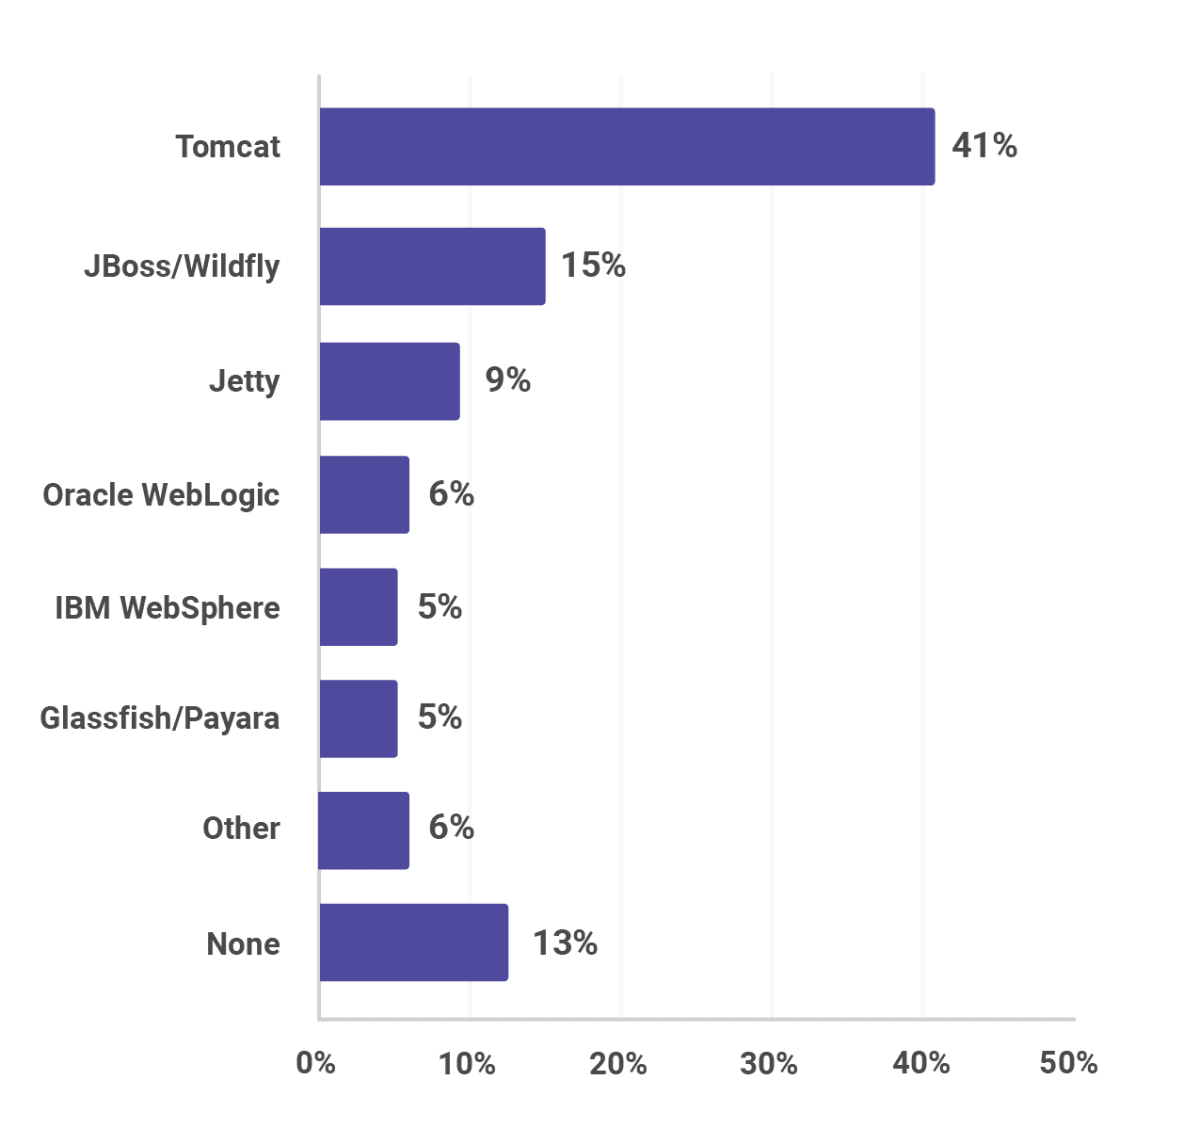 Application Server popularity, including Tomcat, JBoss, WildFly, Jetty, WebLogic, WebSphere, Glassfish